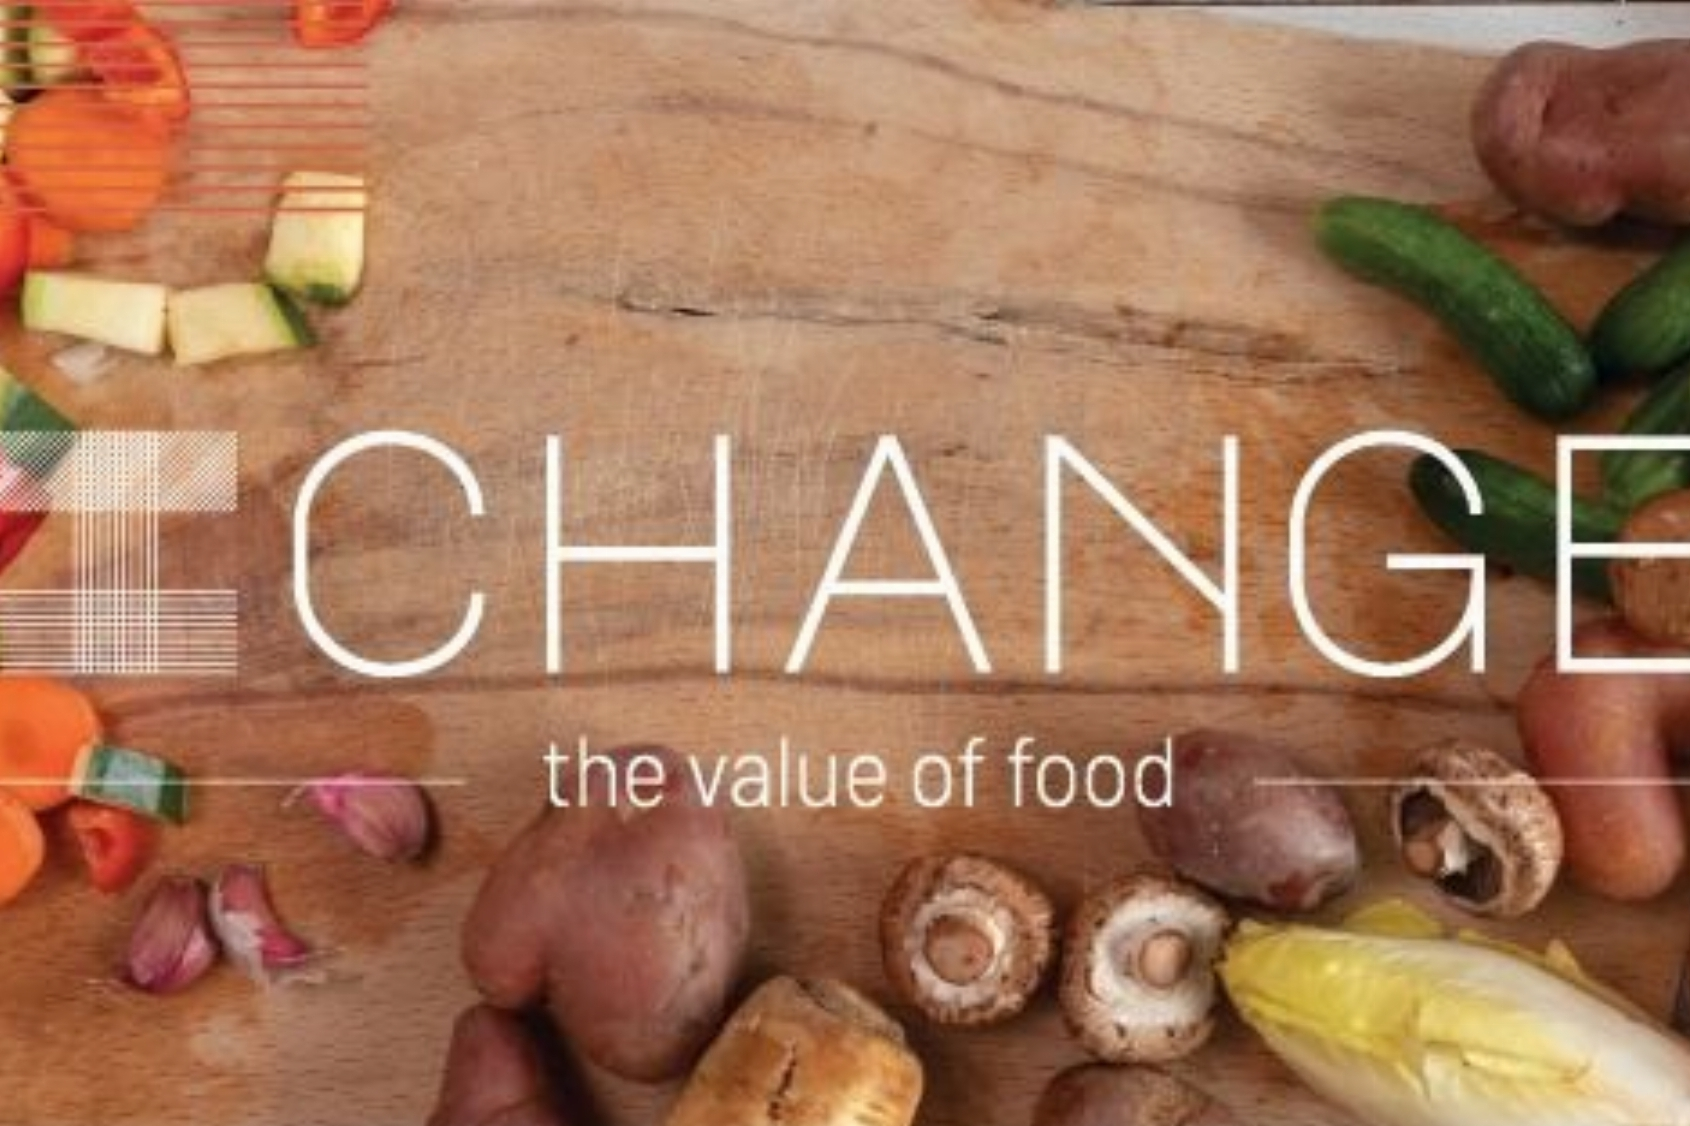 I CHANGE the value of food | Mijn missie is voedselverspilling minimaliseren!